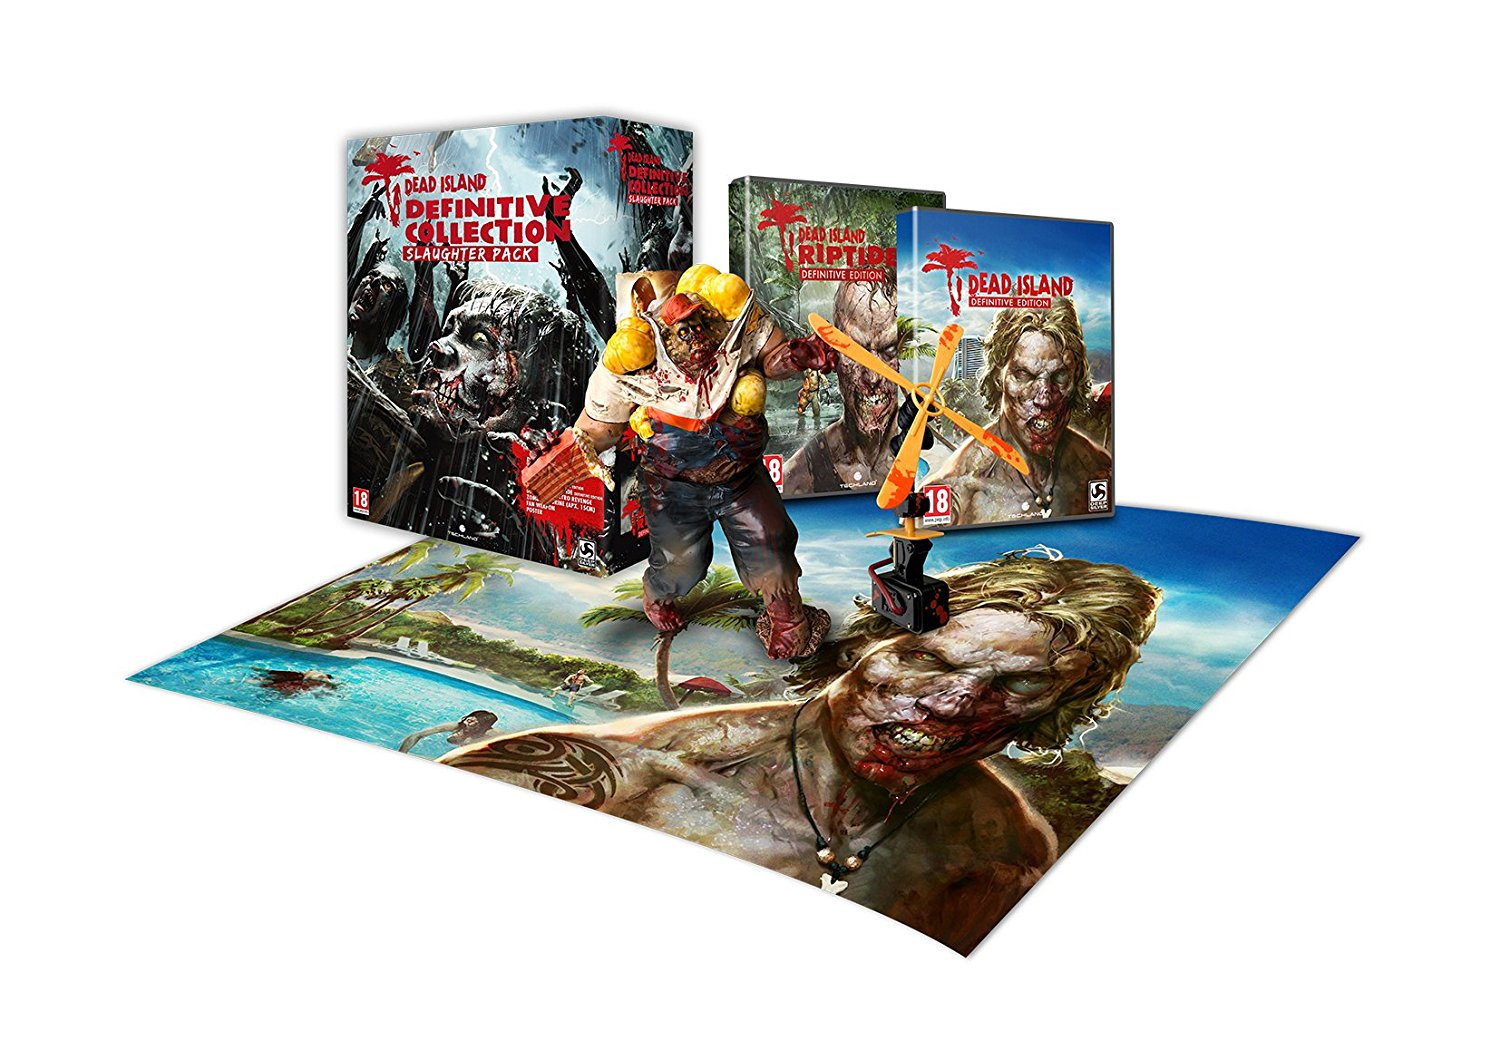 Dead Island Definitive Slaughter Pack - Video Games by Deep Silver UK The Chelsea Gamer